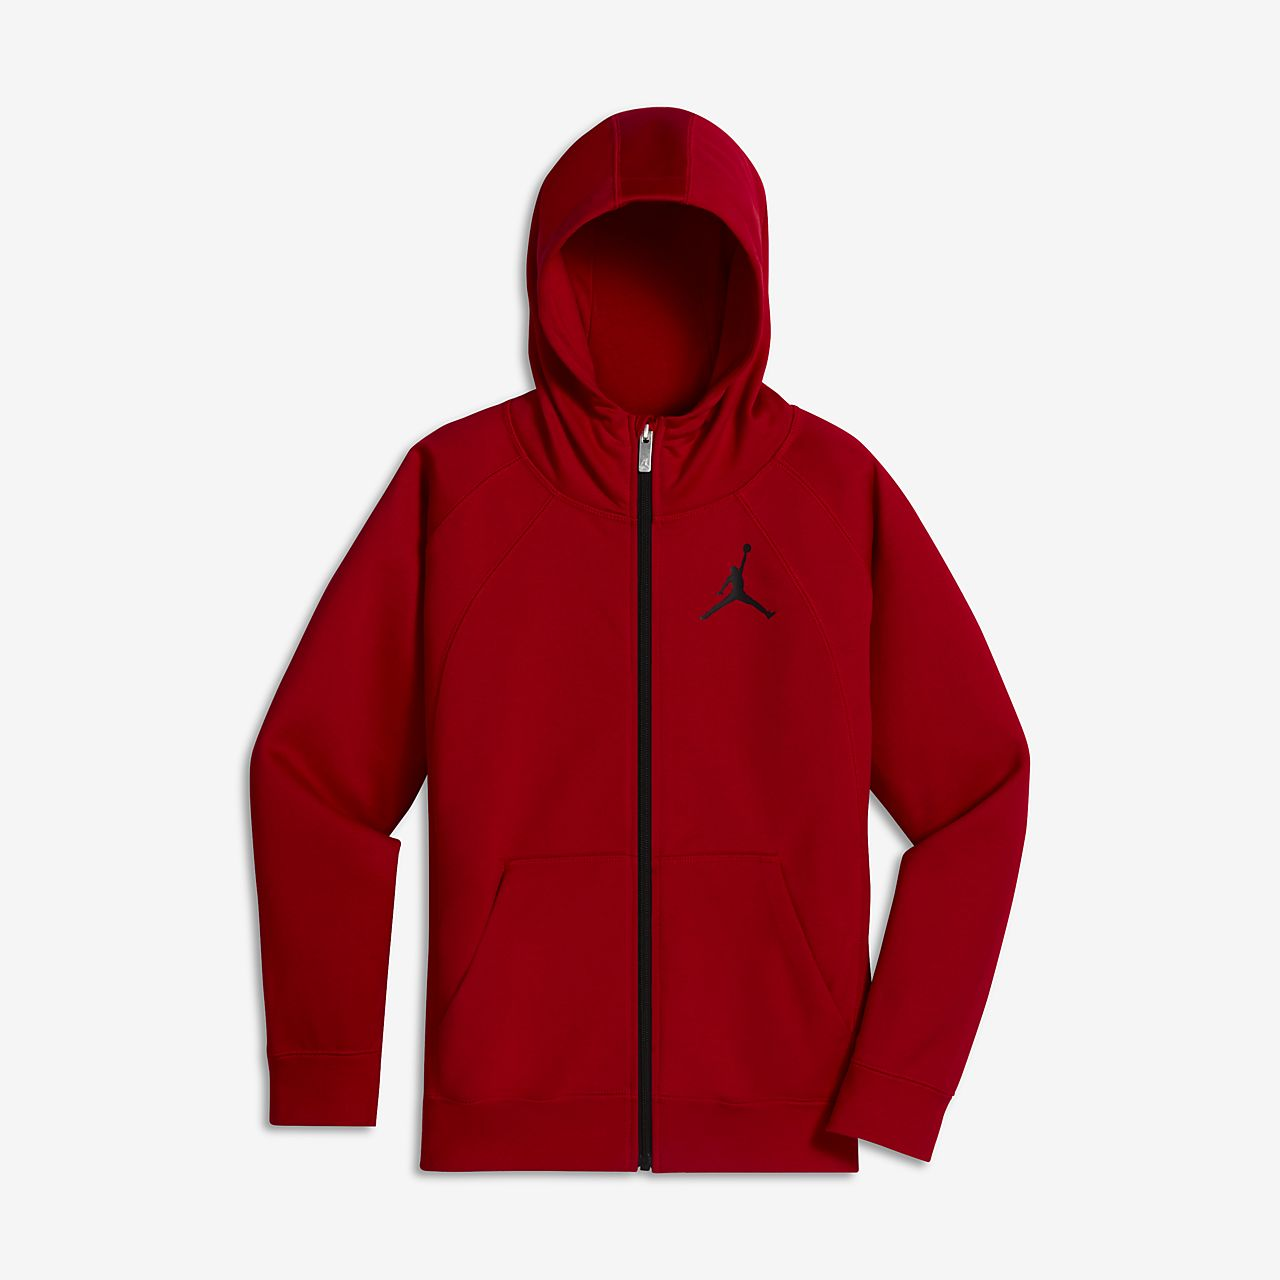 5277b3d4645cff Jordan Sportswear Wings Big Kids  (Boys ) Full-Zip Hoodie. Nike.com